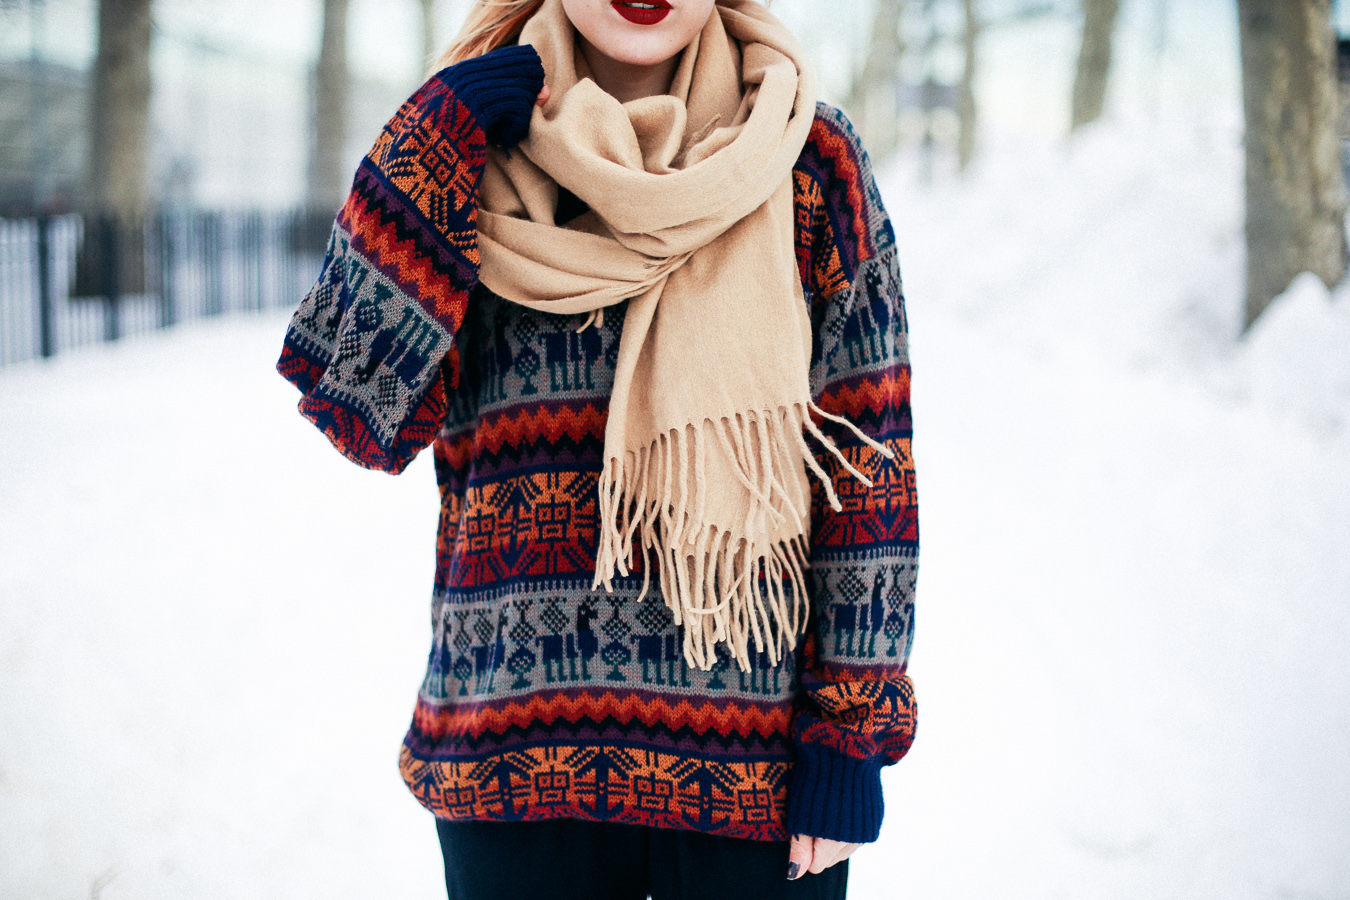 Le Happy wearing peruvian sweater and chunky scarf